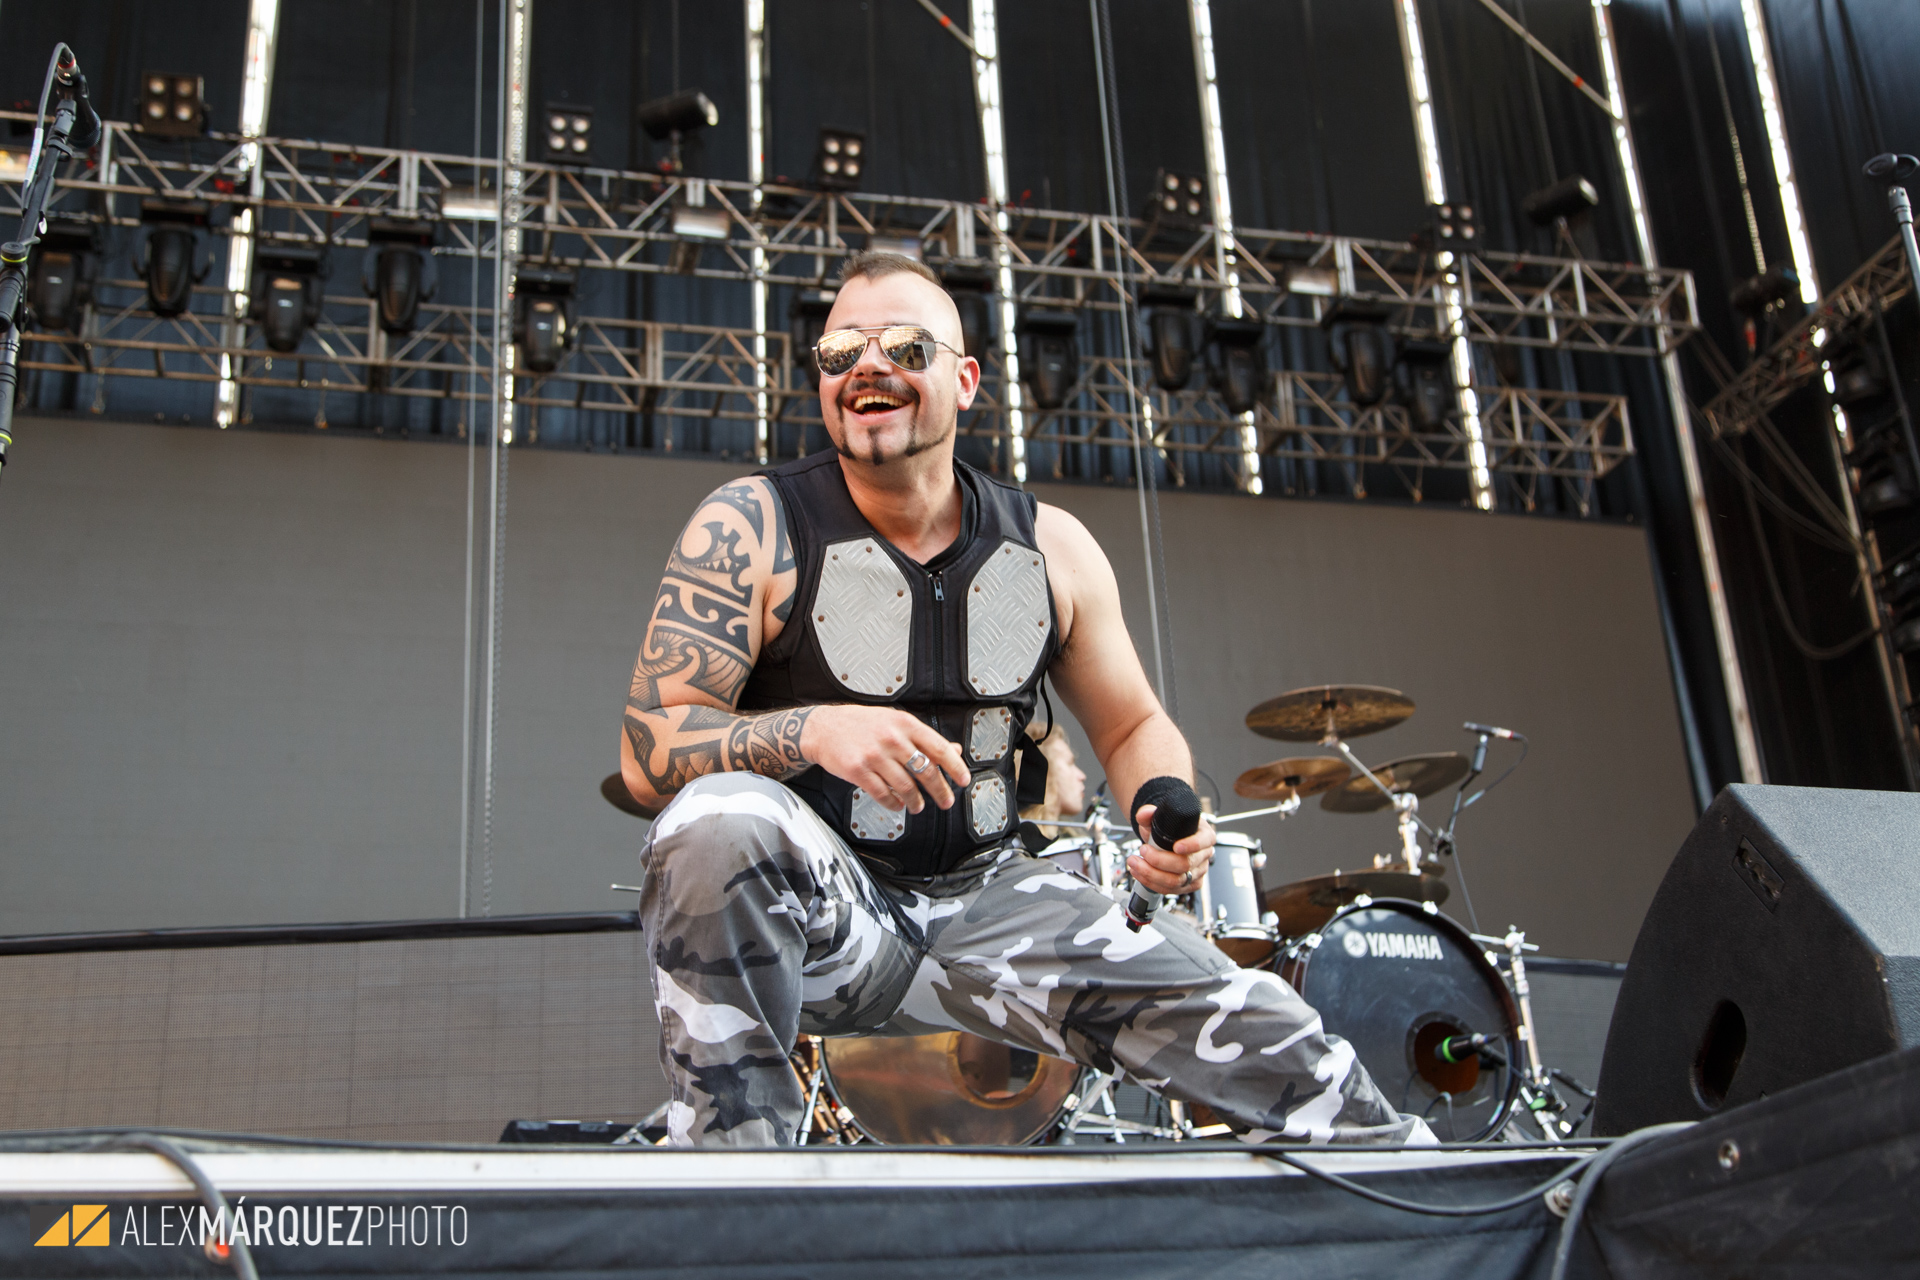 Sabaton - Alex Márquez Photo